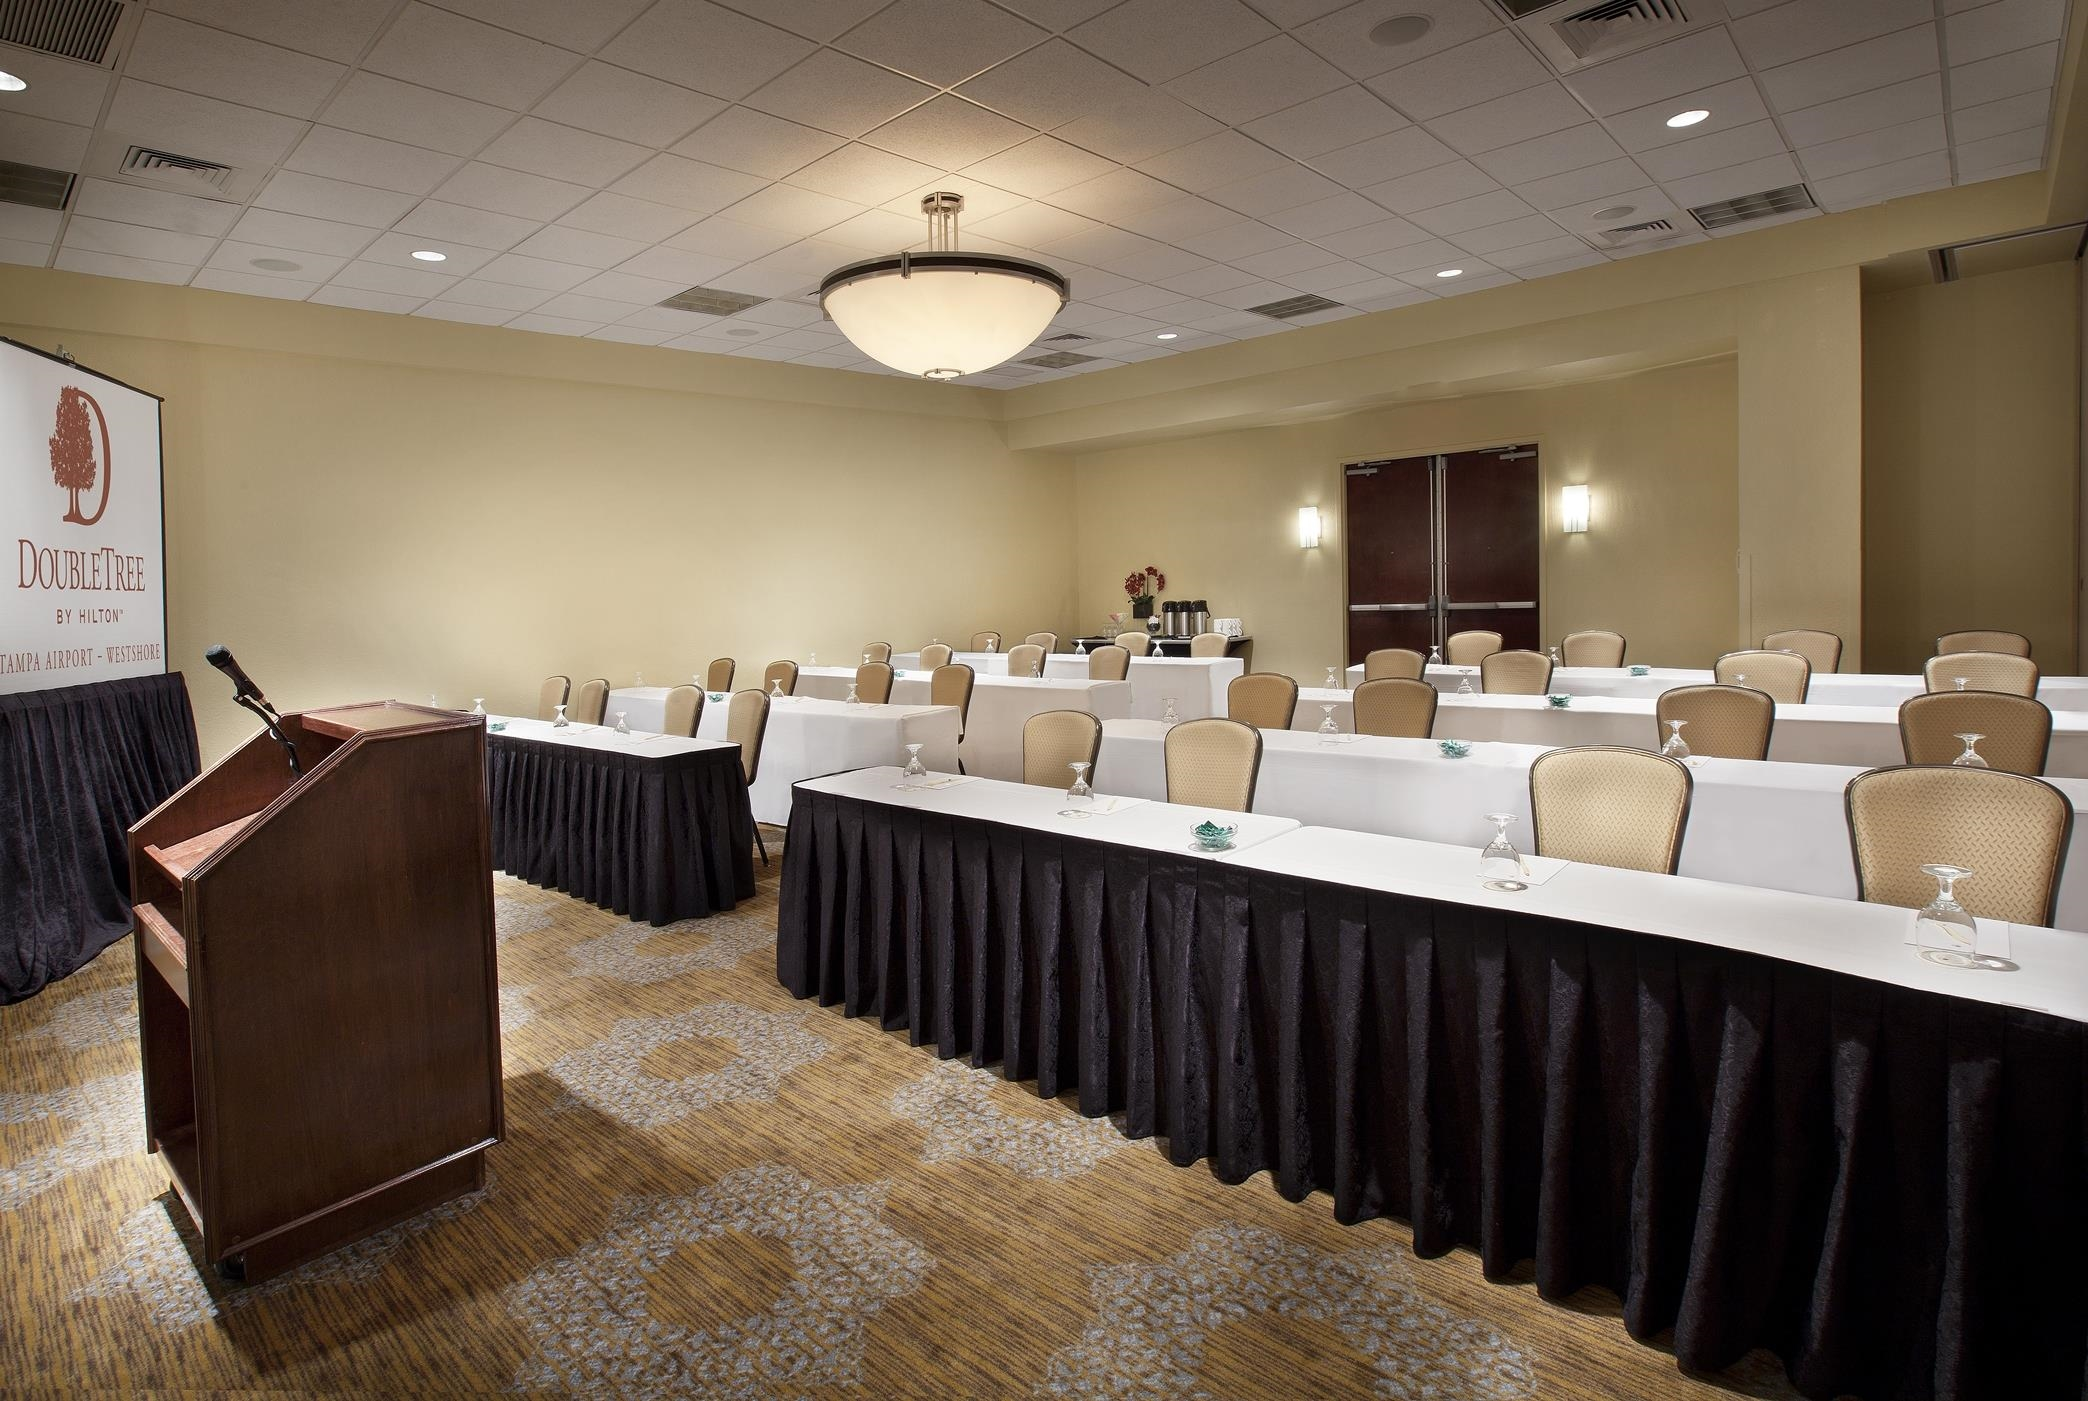 DoubleTree by Hilton Hotel Tampa Airport - Westshore image 3